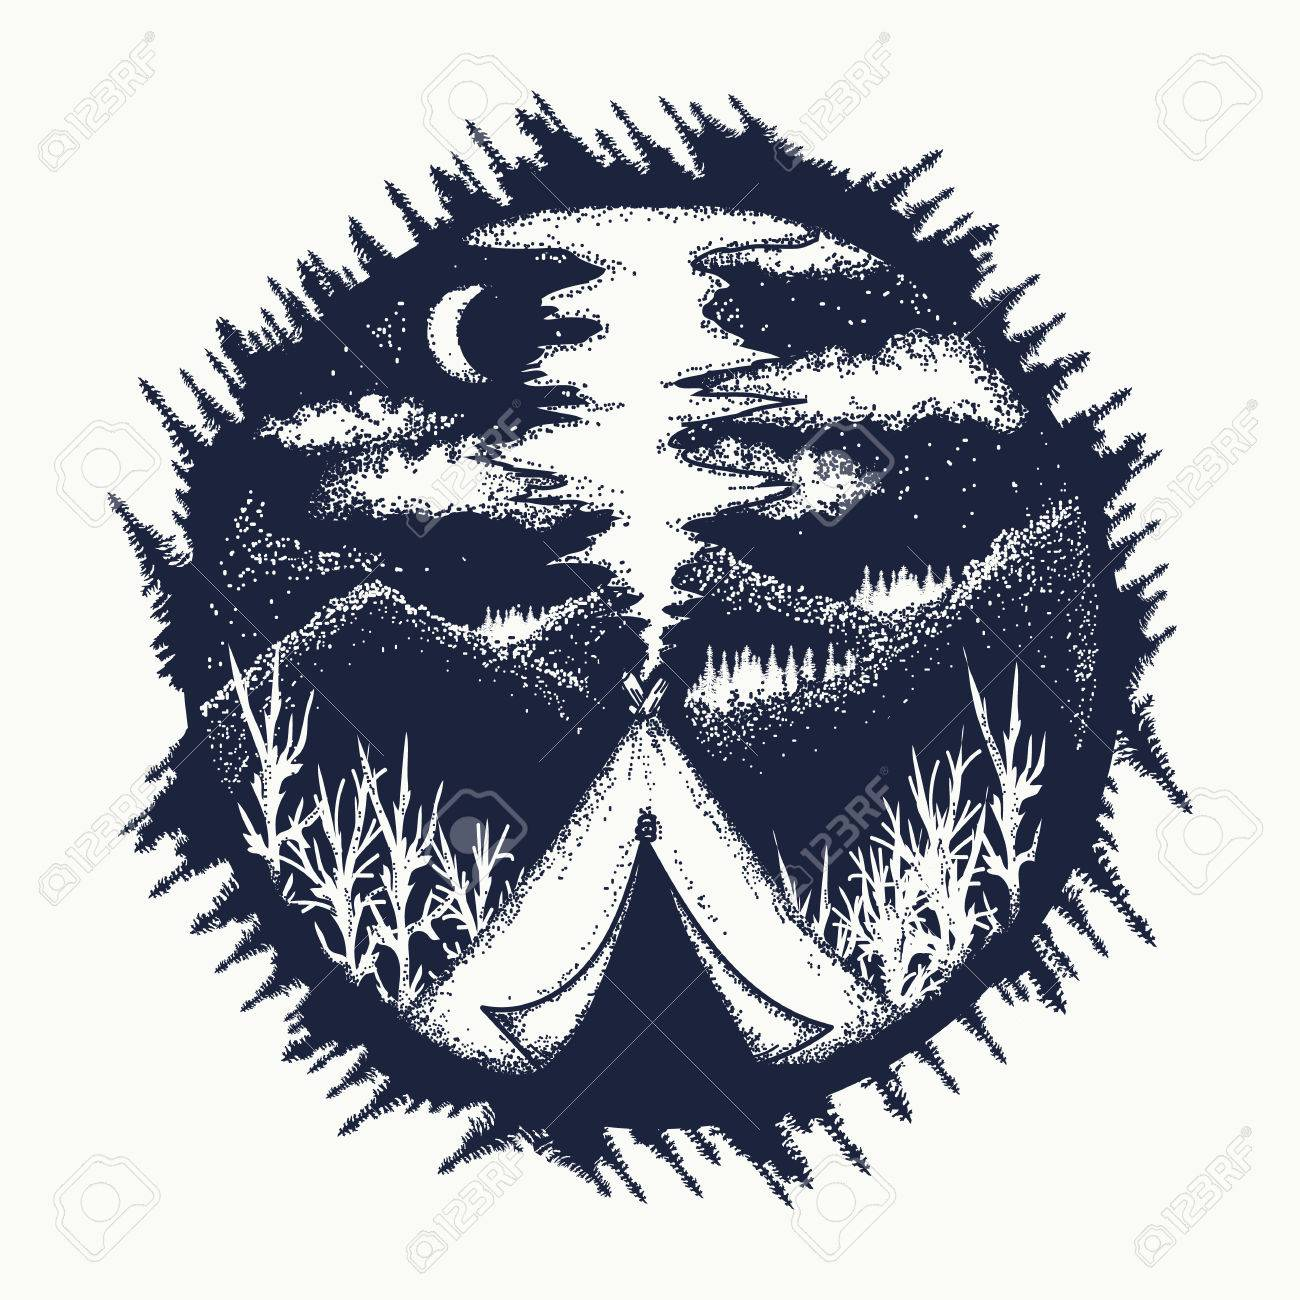 Tent in mountains tattoo art. Travel symbol, tourism, extreme sports, outdoor. Camping in the mountains moon night t-shirt design - 70188160